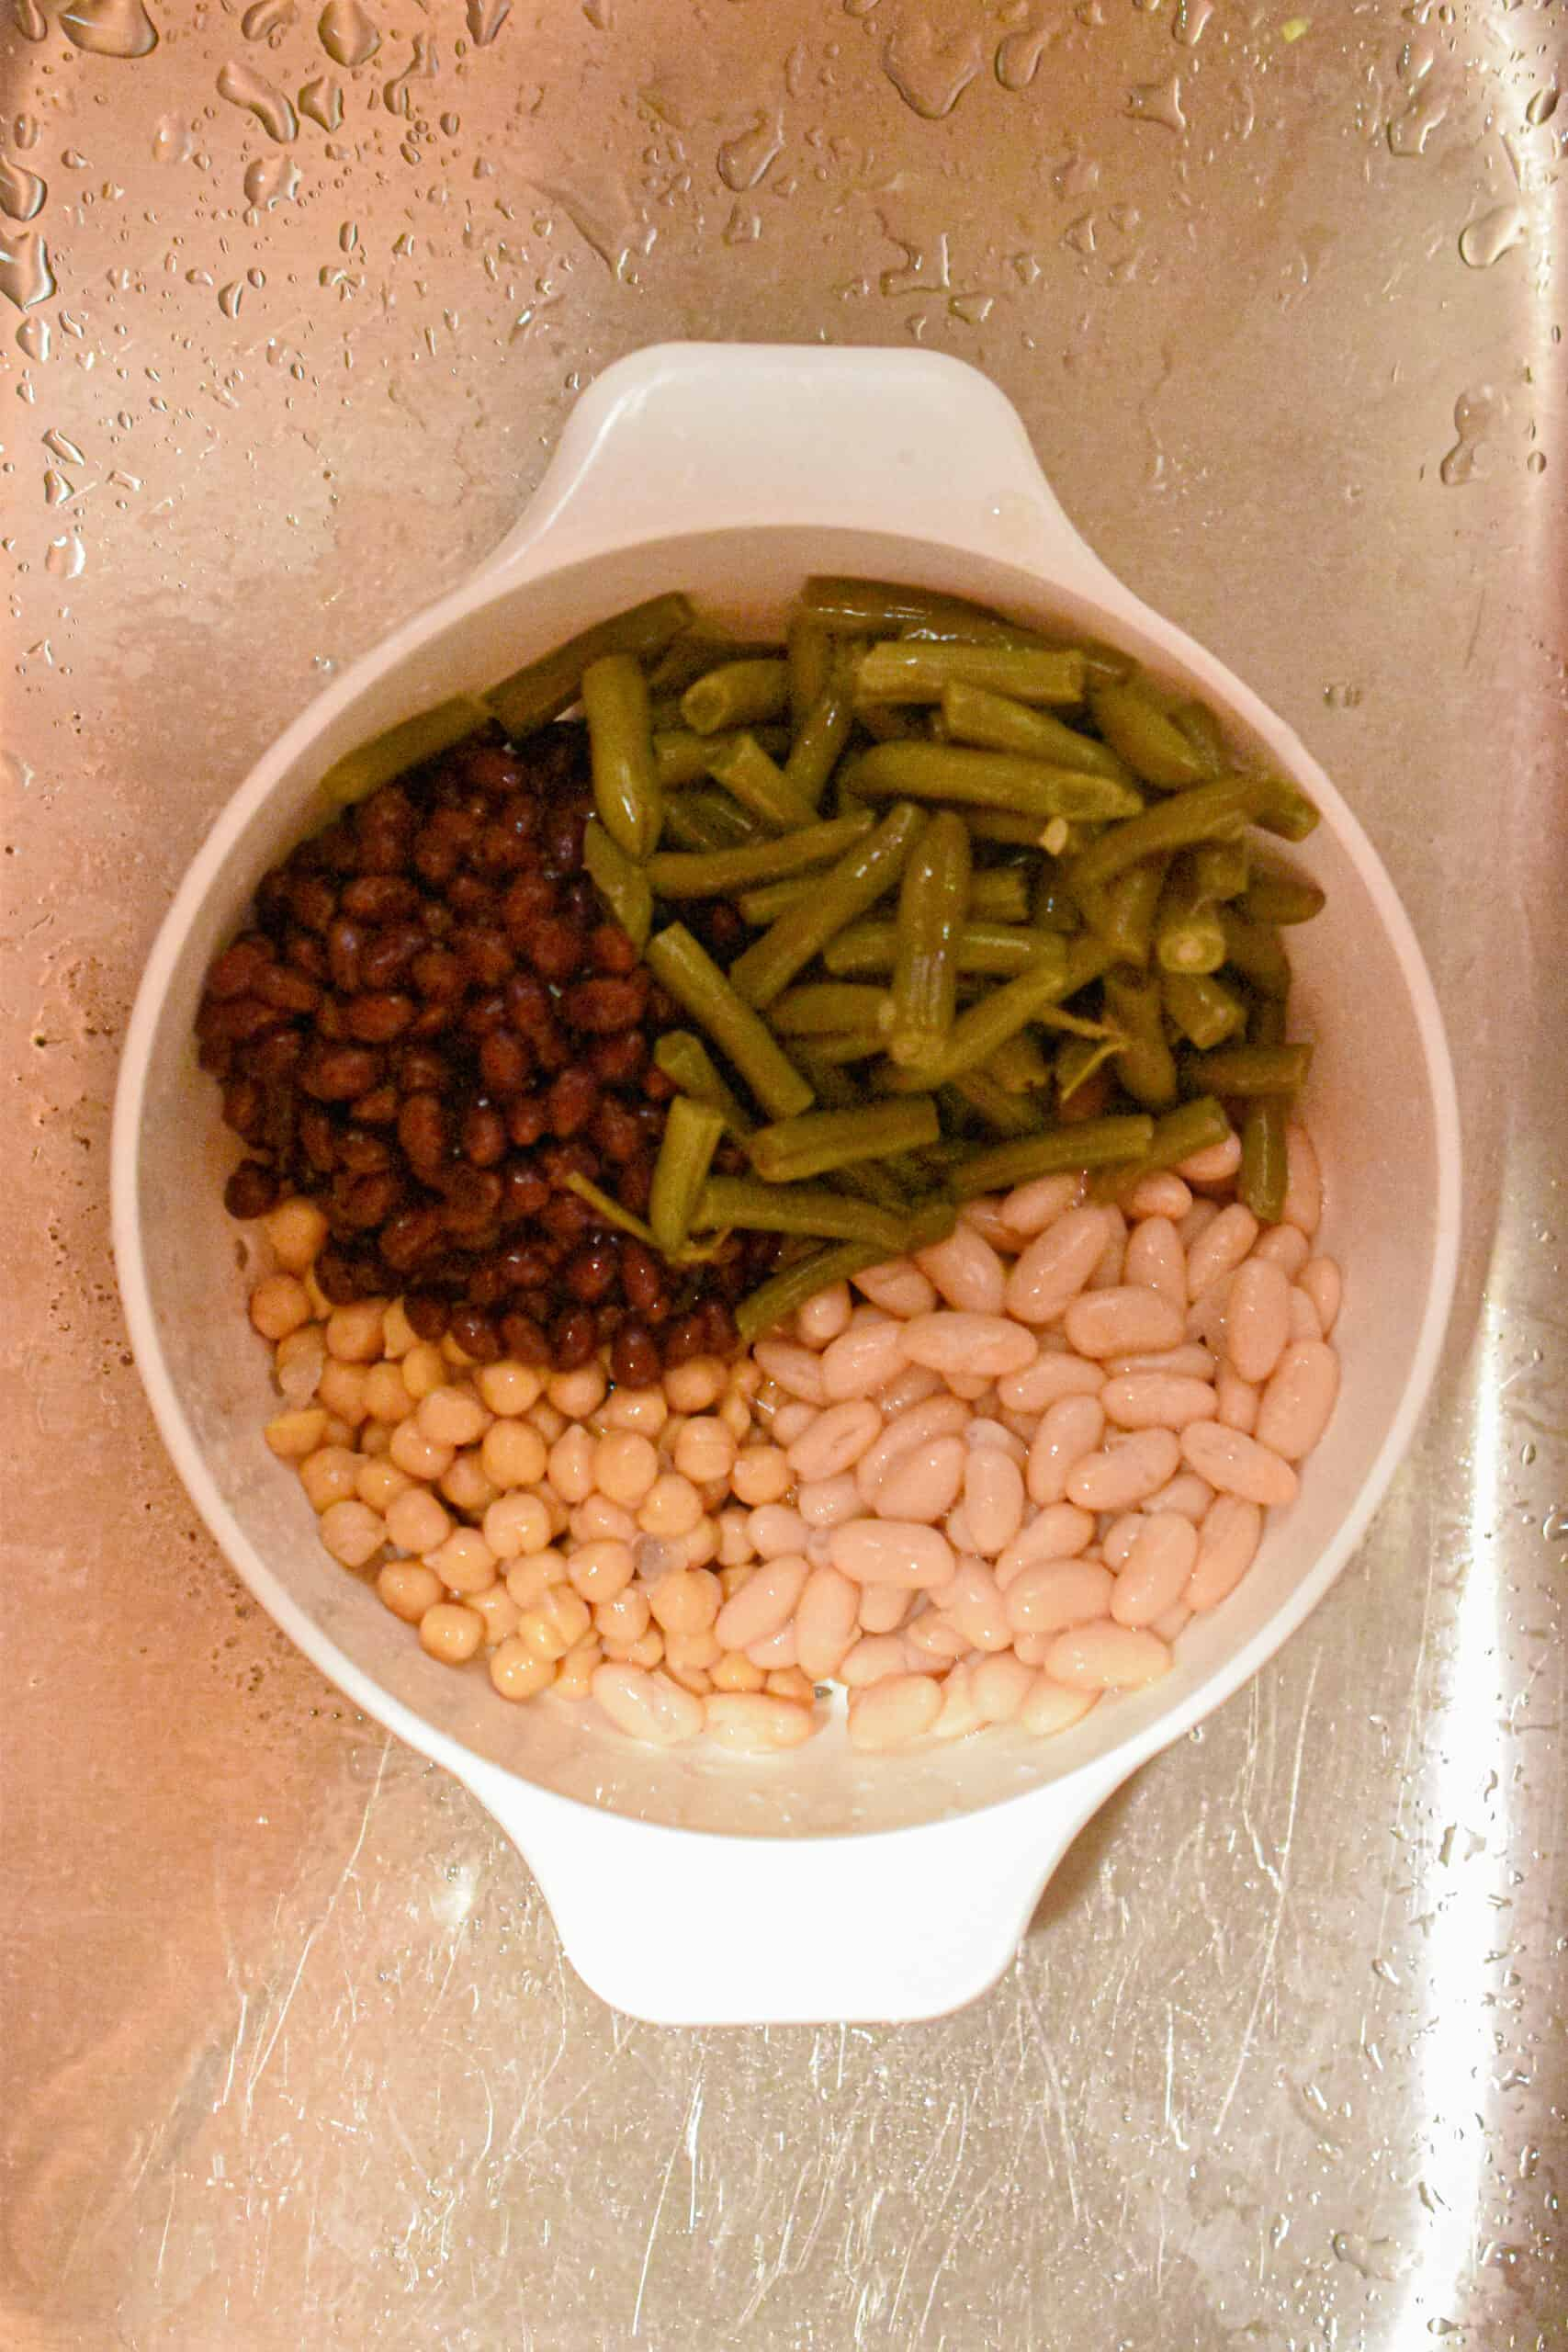 The cans of beans are washed and drained in a colander